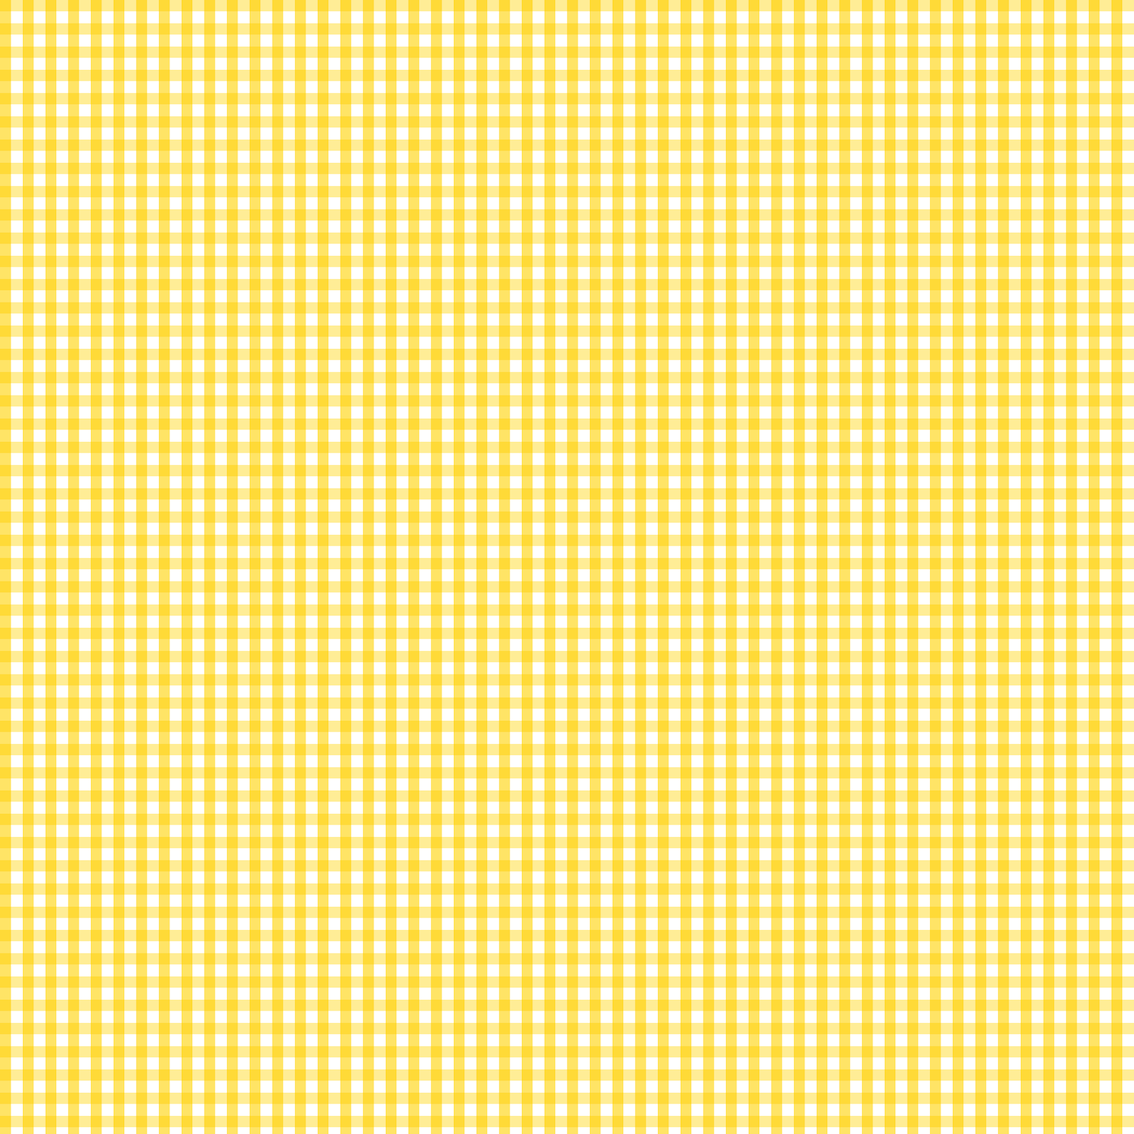 Plaid clipart gingham Gingham free scrapbook and yellow